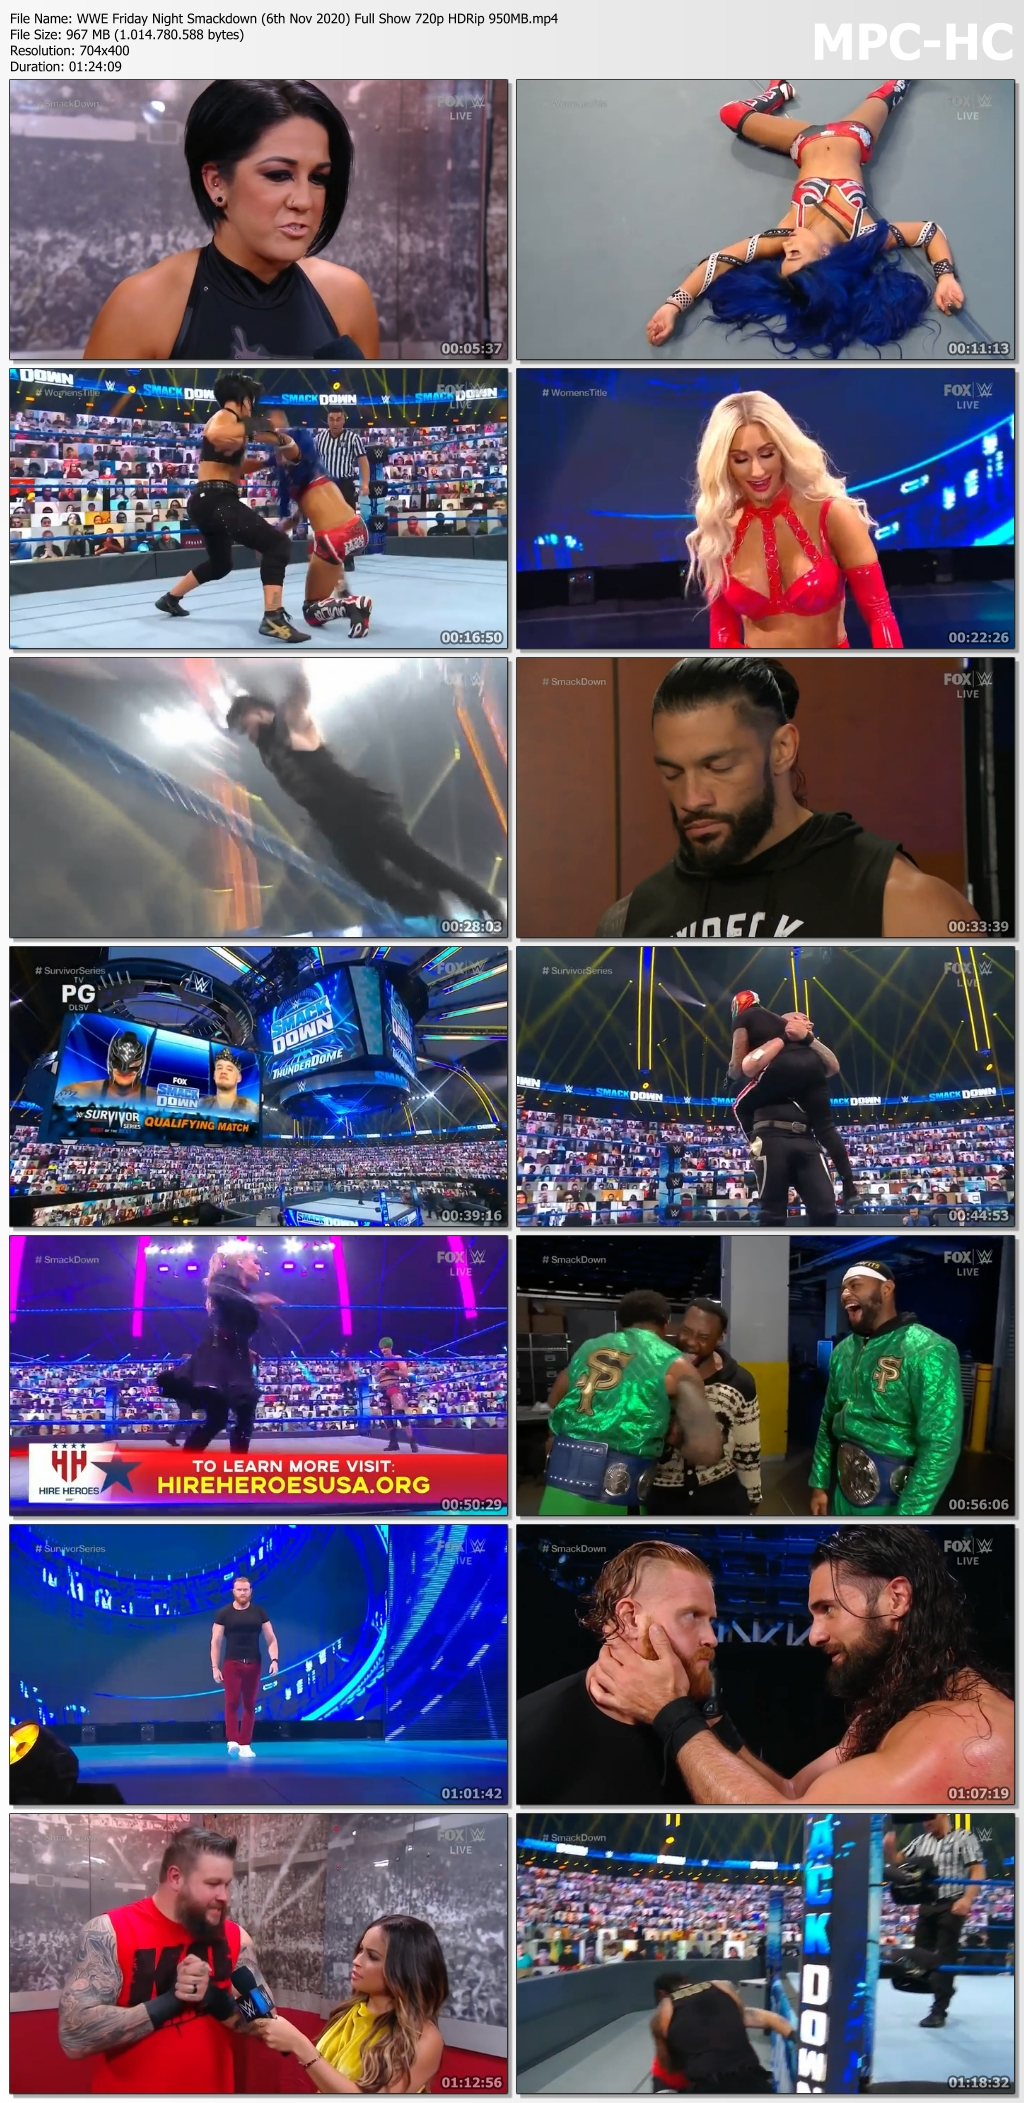 WWE-Friday-Night-Smackdown-6th-Nov-2020-Full-Show-720p-HDRip-950-MB-mp4-thumbs